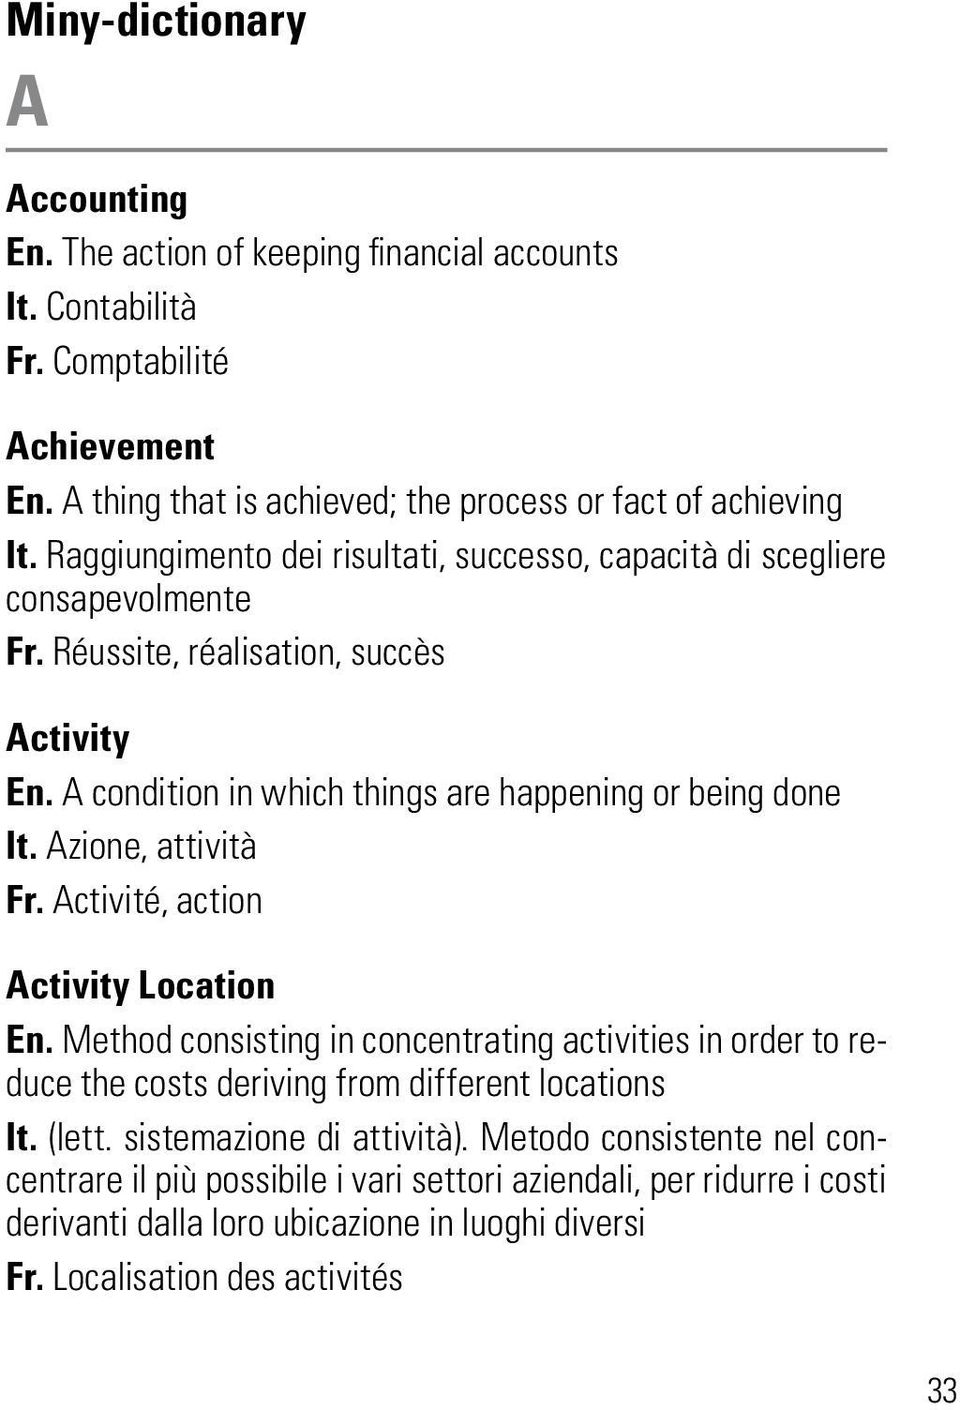 Azione, attività Fr. Activité, action Activity Location En. Method consisting in concentrating activities in order to reduce the costs deriving from different locations It. (lett.